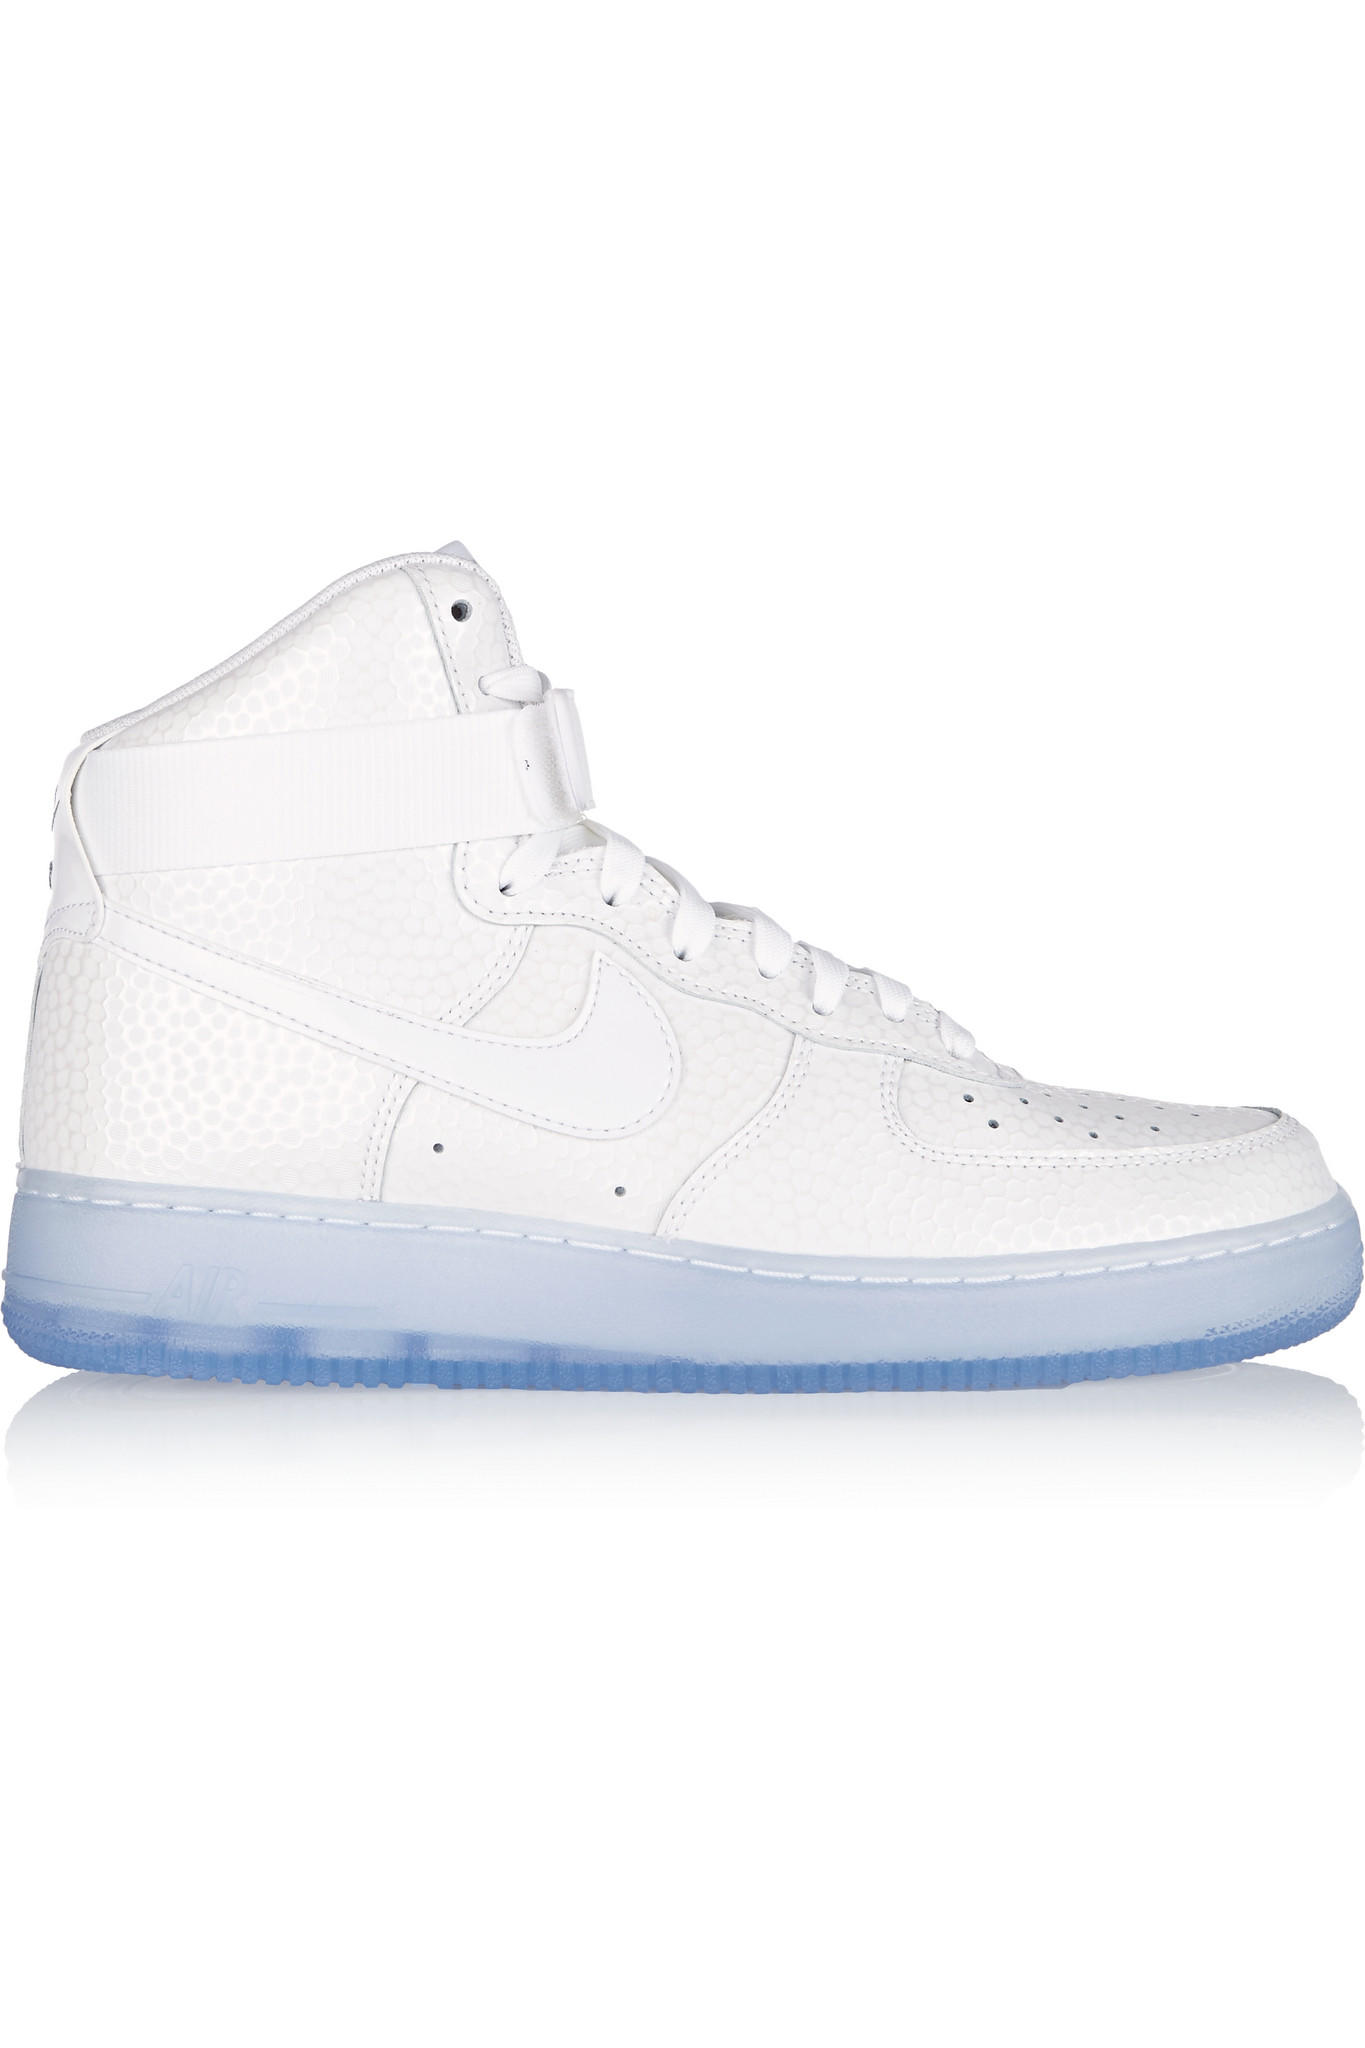 Nike - Air Force 1 Hi Premium from NET-A-PORTER 6a1162ccf1bb